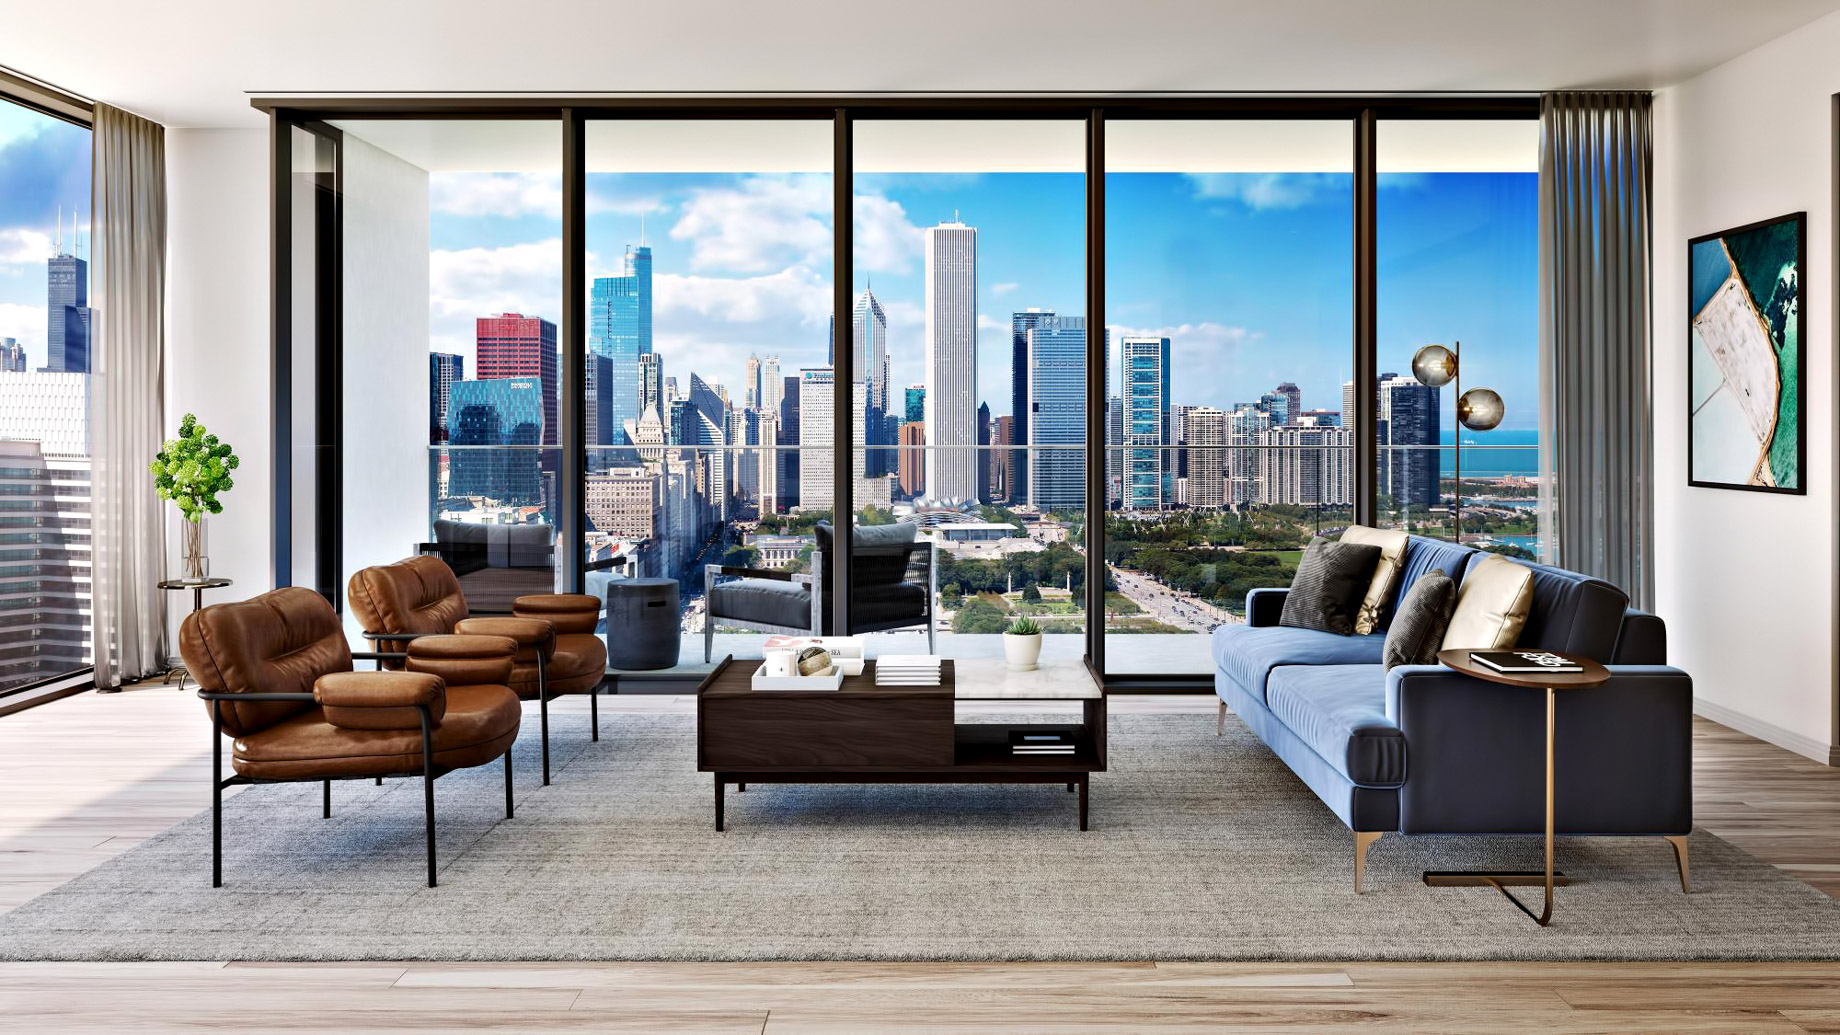 Incredible Views - NEMA Chicago - 1200 S Indiana Ave, Chicago, IL, USA